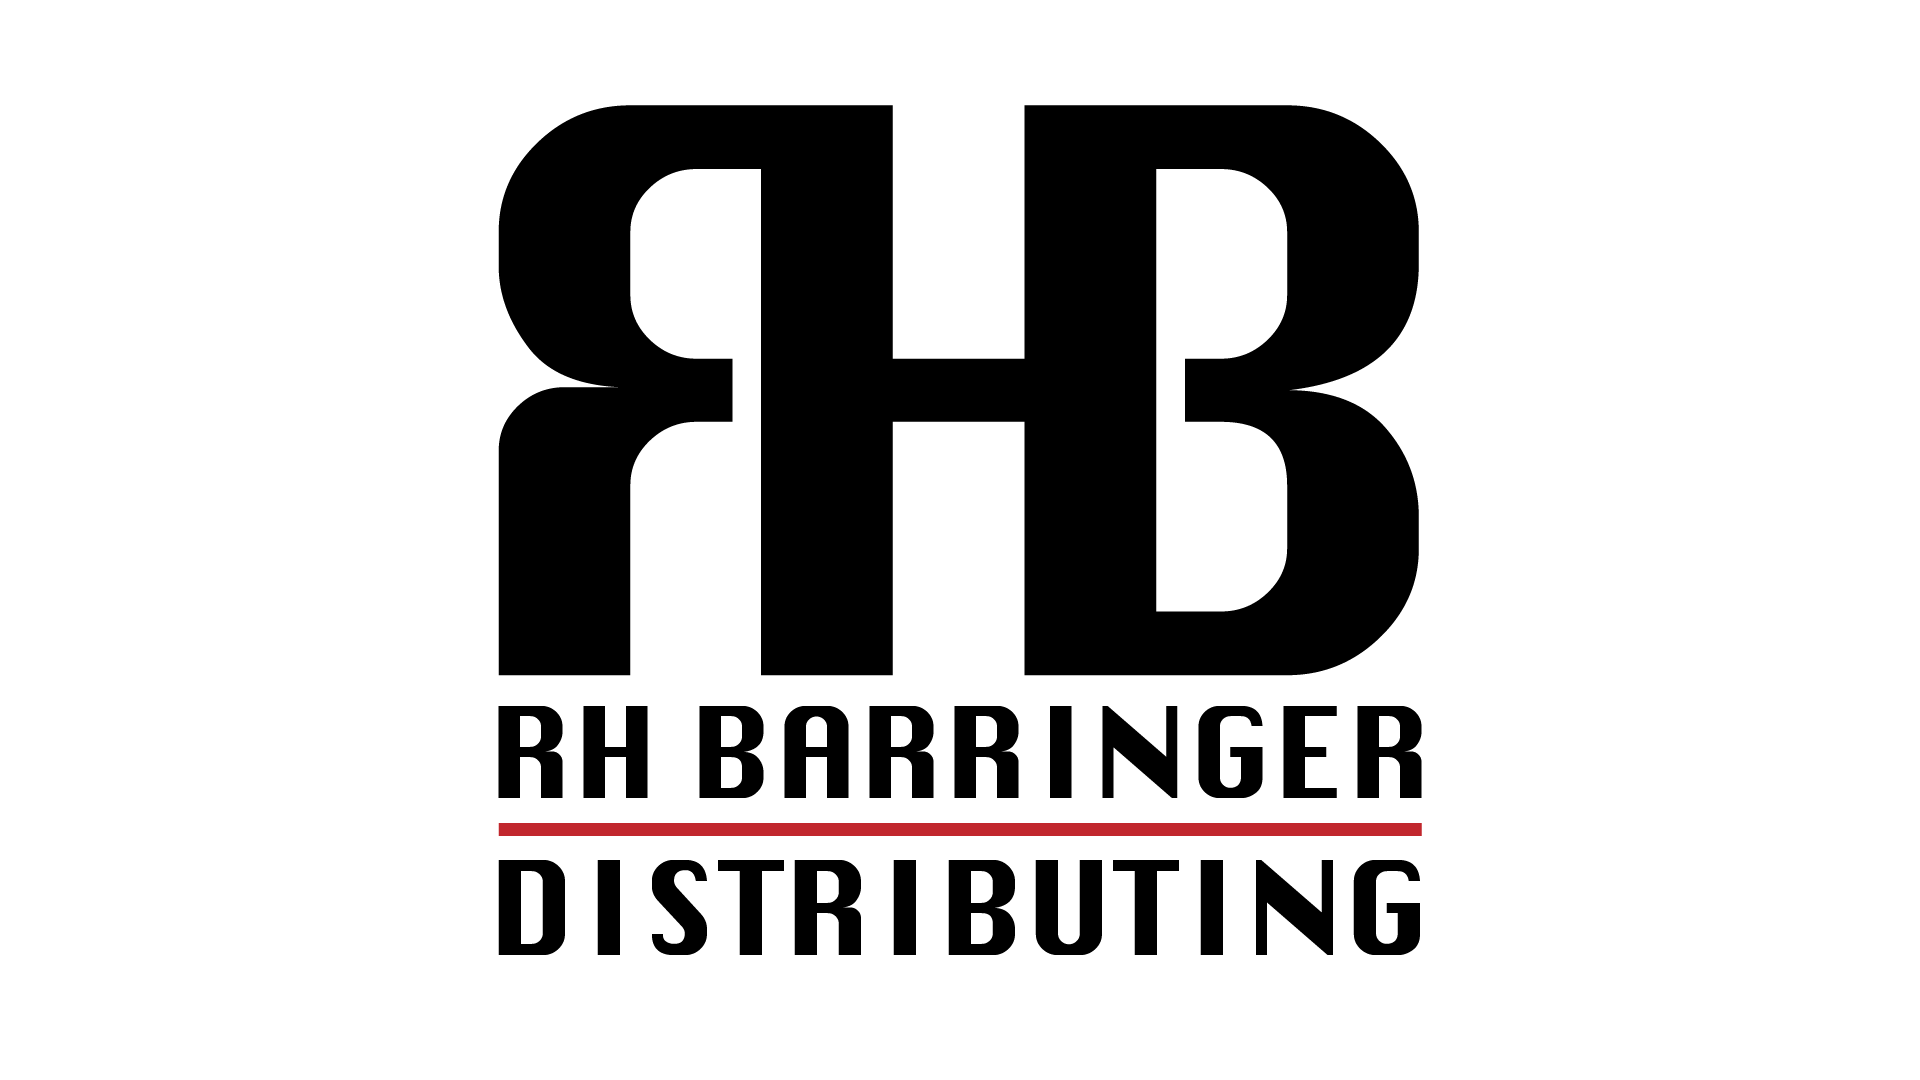 RH Barringer